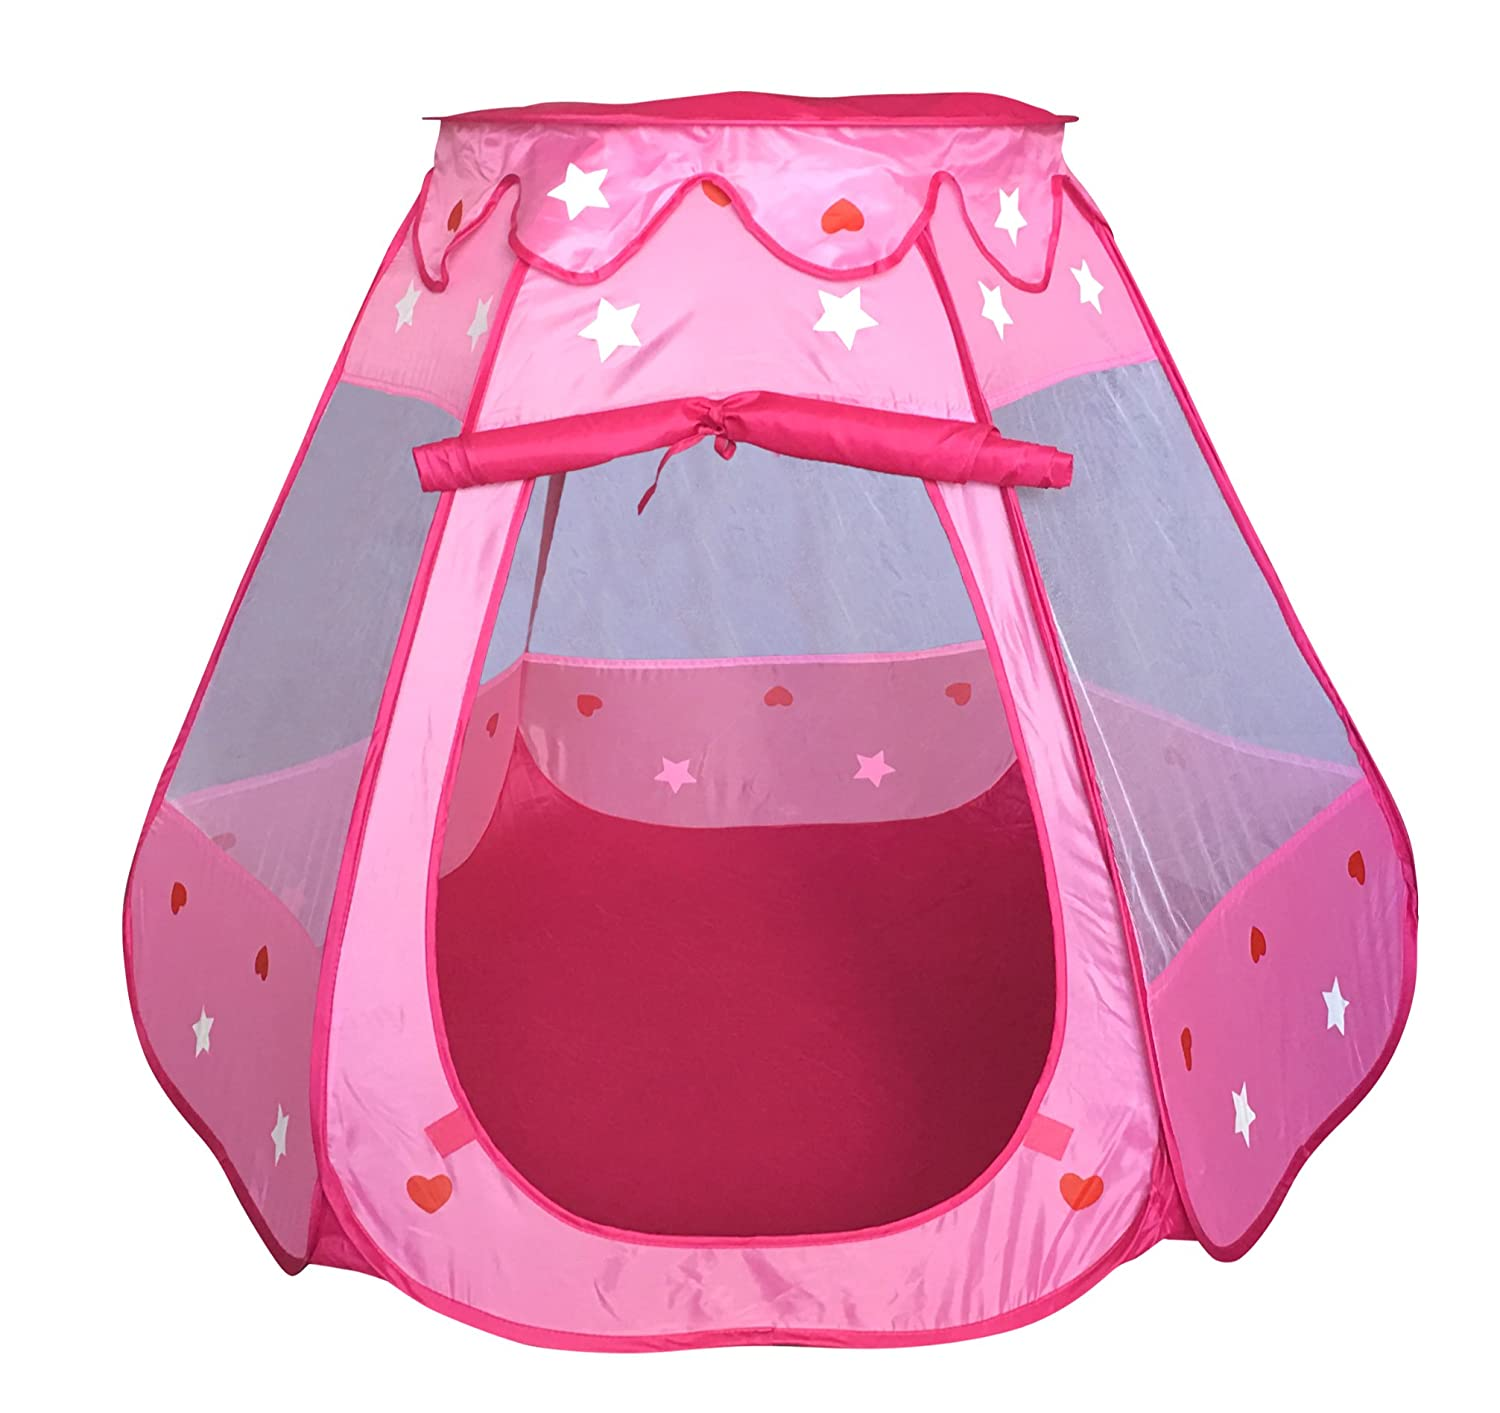 SueSport Girls Pink Princess Play Tent Indoor and Outdoor, Children Play Tent for Girls